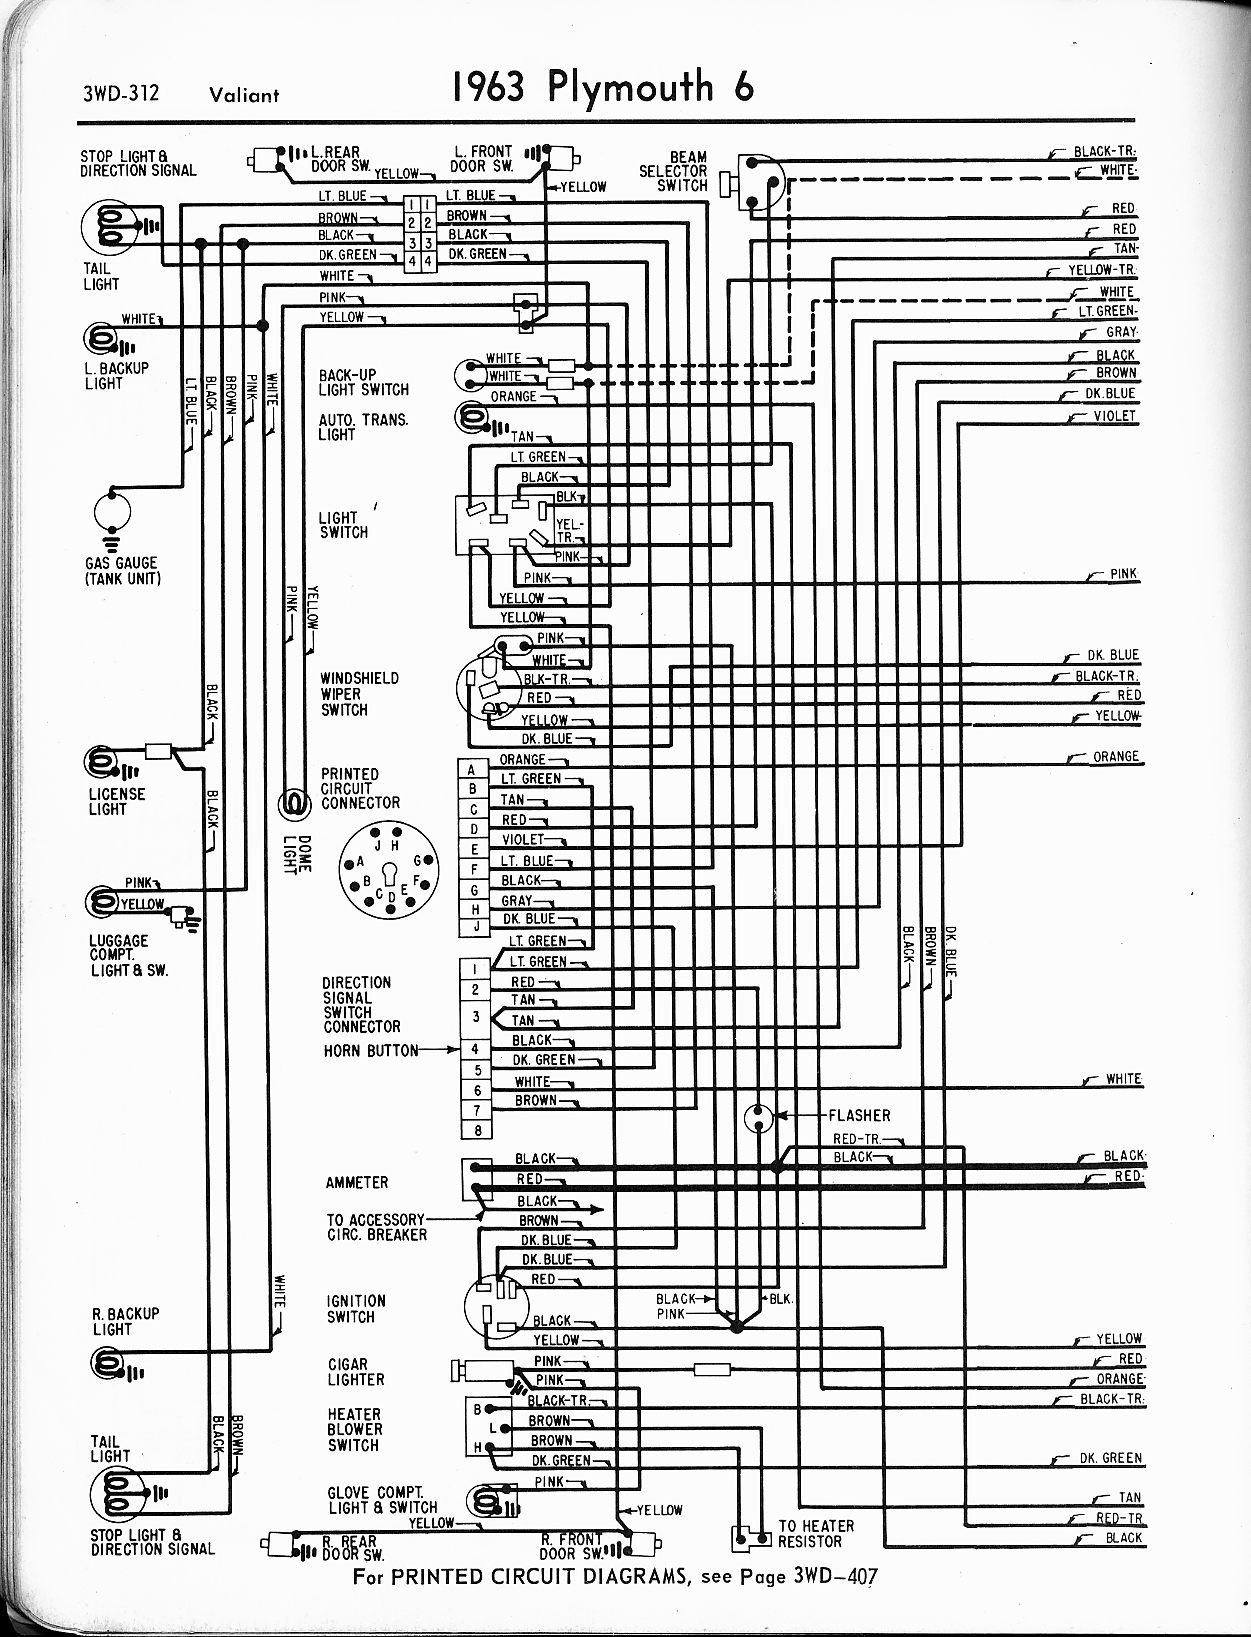 mopar ignition switch wiring diagram of the hand and wrist bones 74 plymouth satellite get free image